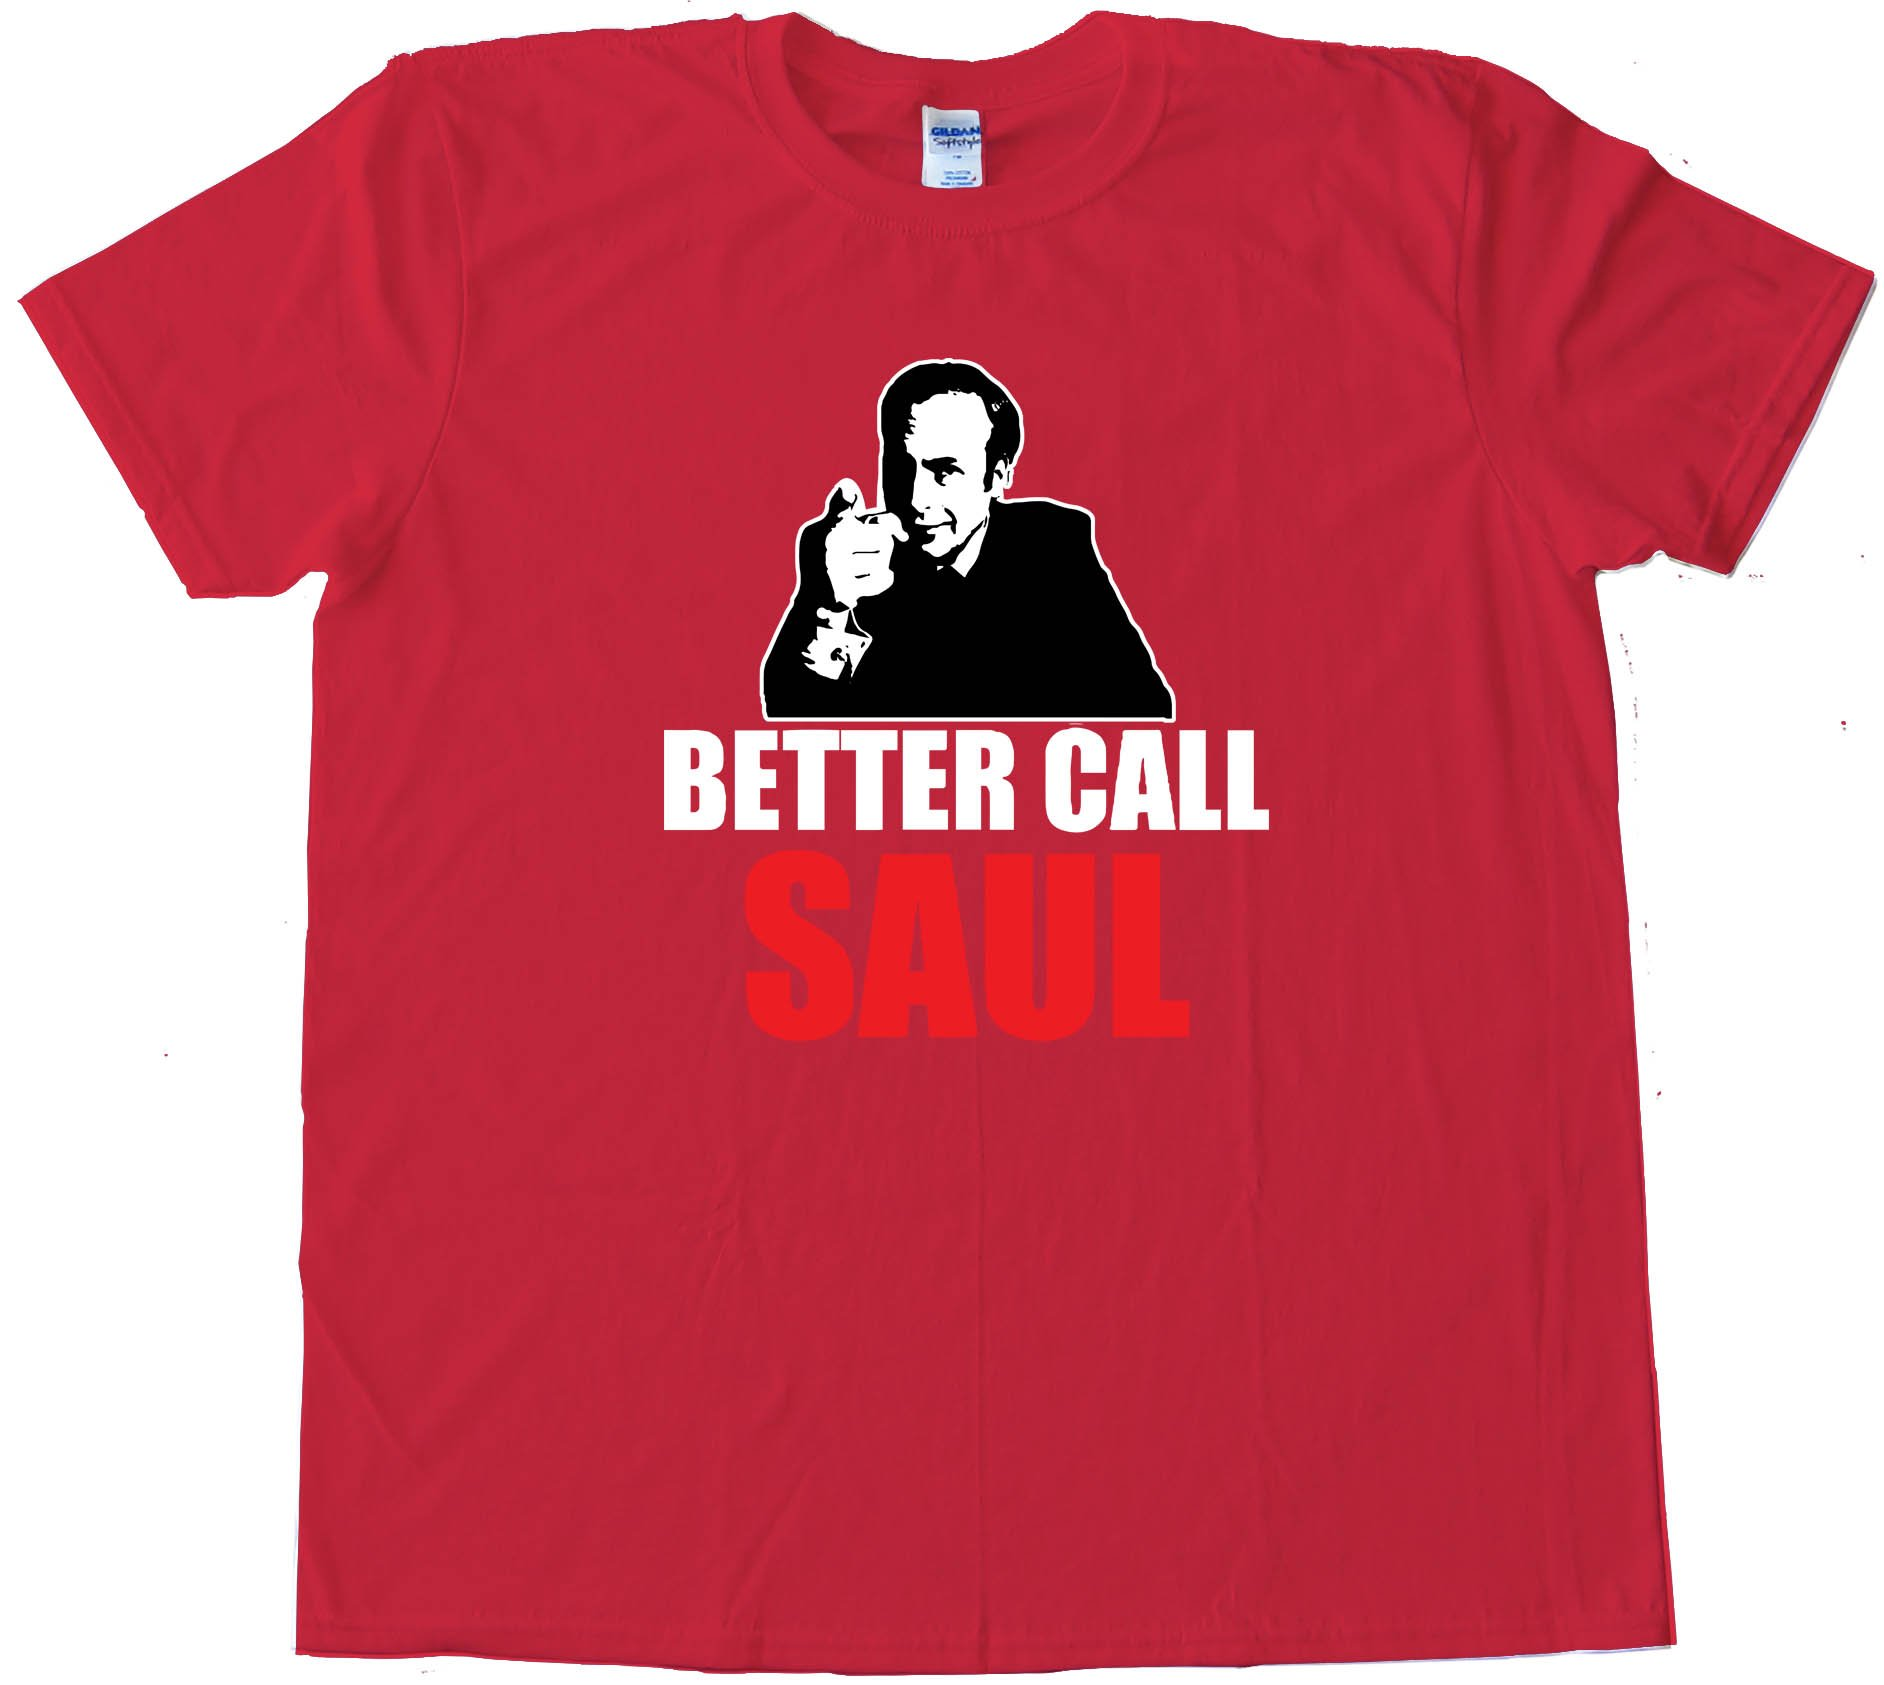 Better Call Saul - Saul Goodman - Attorney At Law - Breaking Bad -Tee Shirt